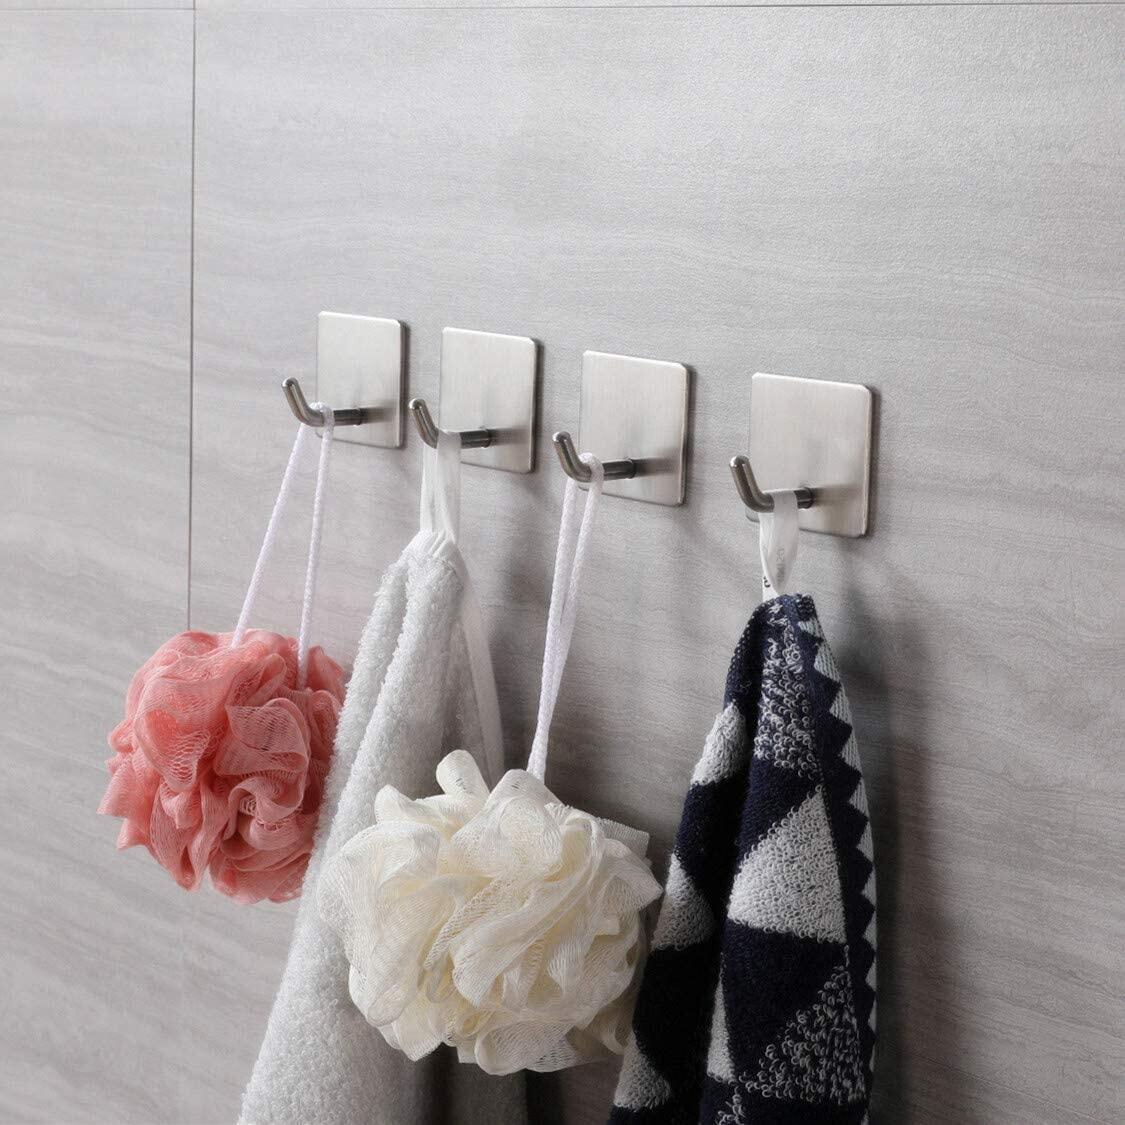 Self Adhesive Hooks (6 pieces), stainless steel wall hooks self-adhesive adhesive hooks bathroom and towel rail kitchen waterproof for kitchen bathroomHooks self-adhesive (6 pieces) without drilling stainless steel wall hooks self-adhesive adhesive hooks bathroom and towel rail kitchen waterproof for kitchen bathroomSelf-adhesive Hooks